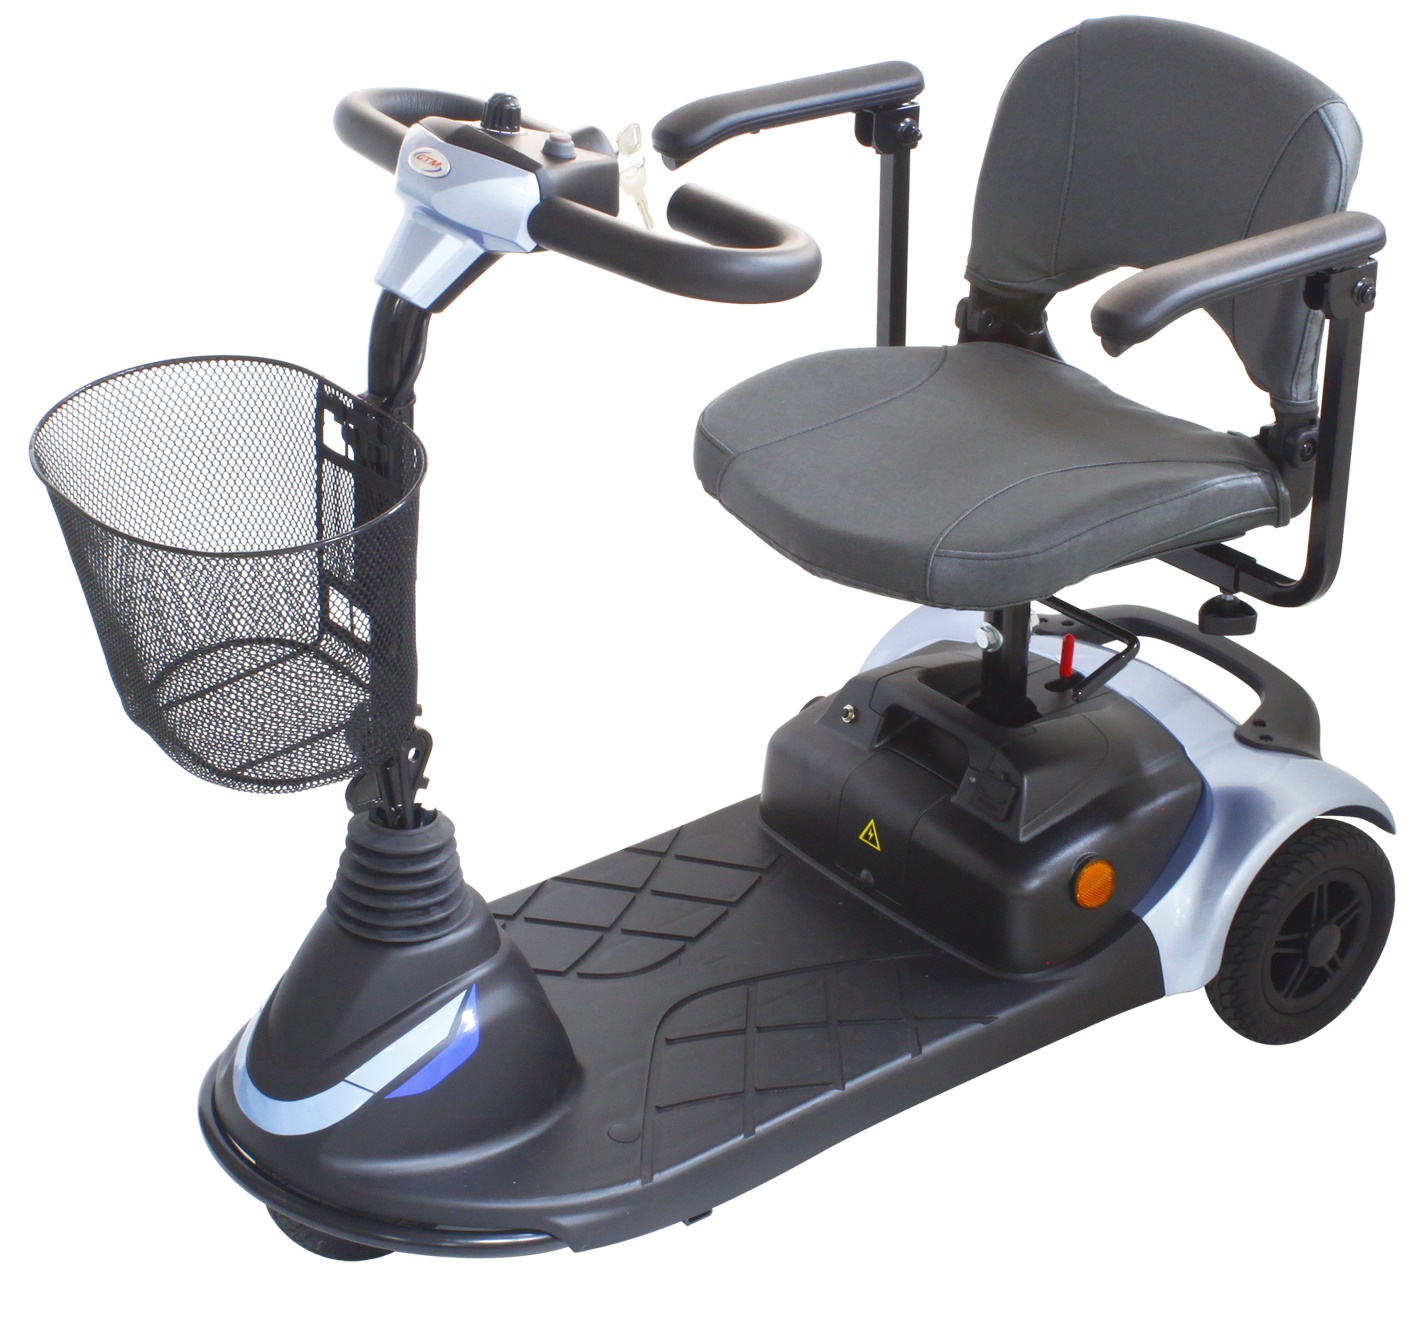 New Ctm Hs 265 3 Wheel Electric Mini Mobility Travel